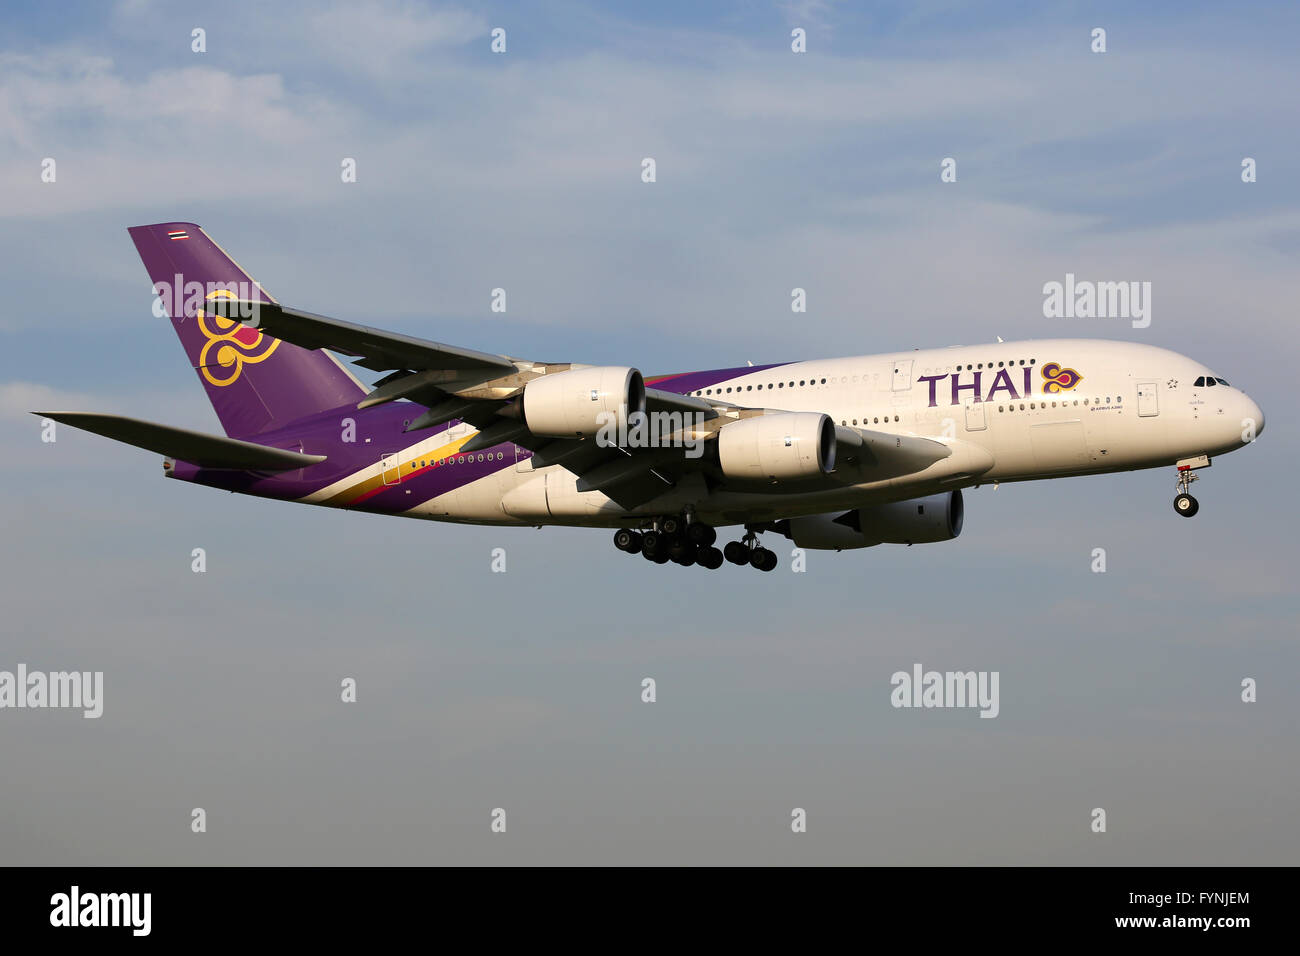 Tokyo, Japan - October 9, 2015: A Thai Airways Airbus A380-800 with the registration HS-TUF landing at Tokyo Narita - Stock Image